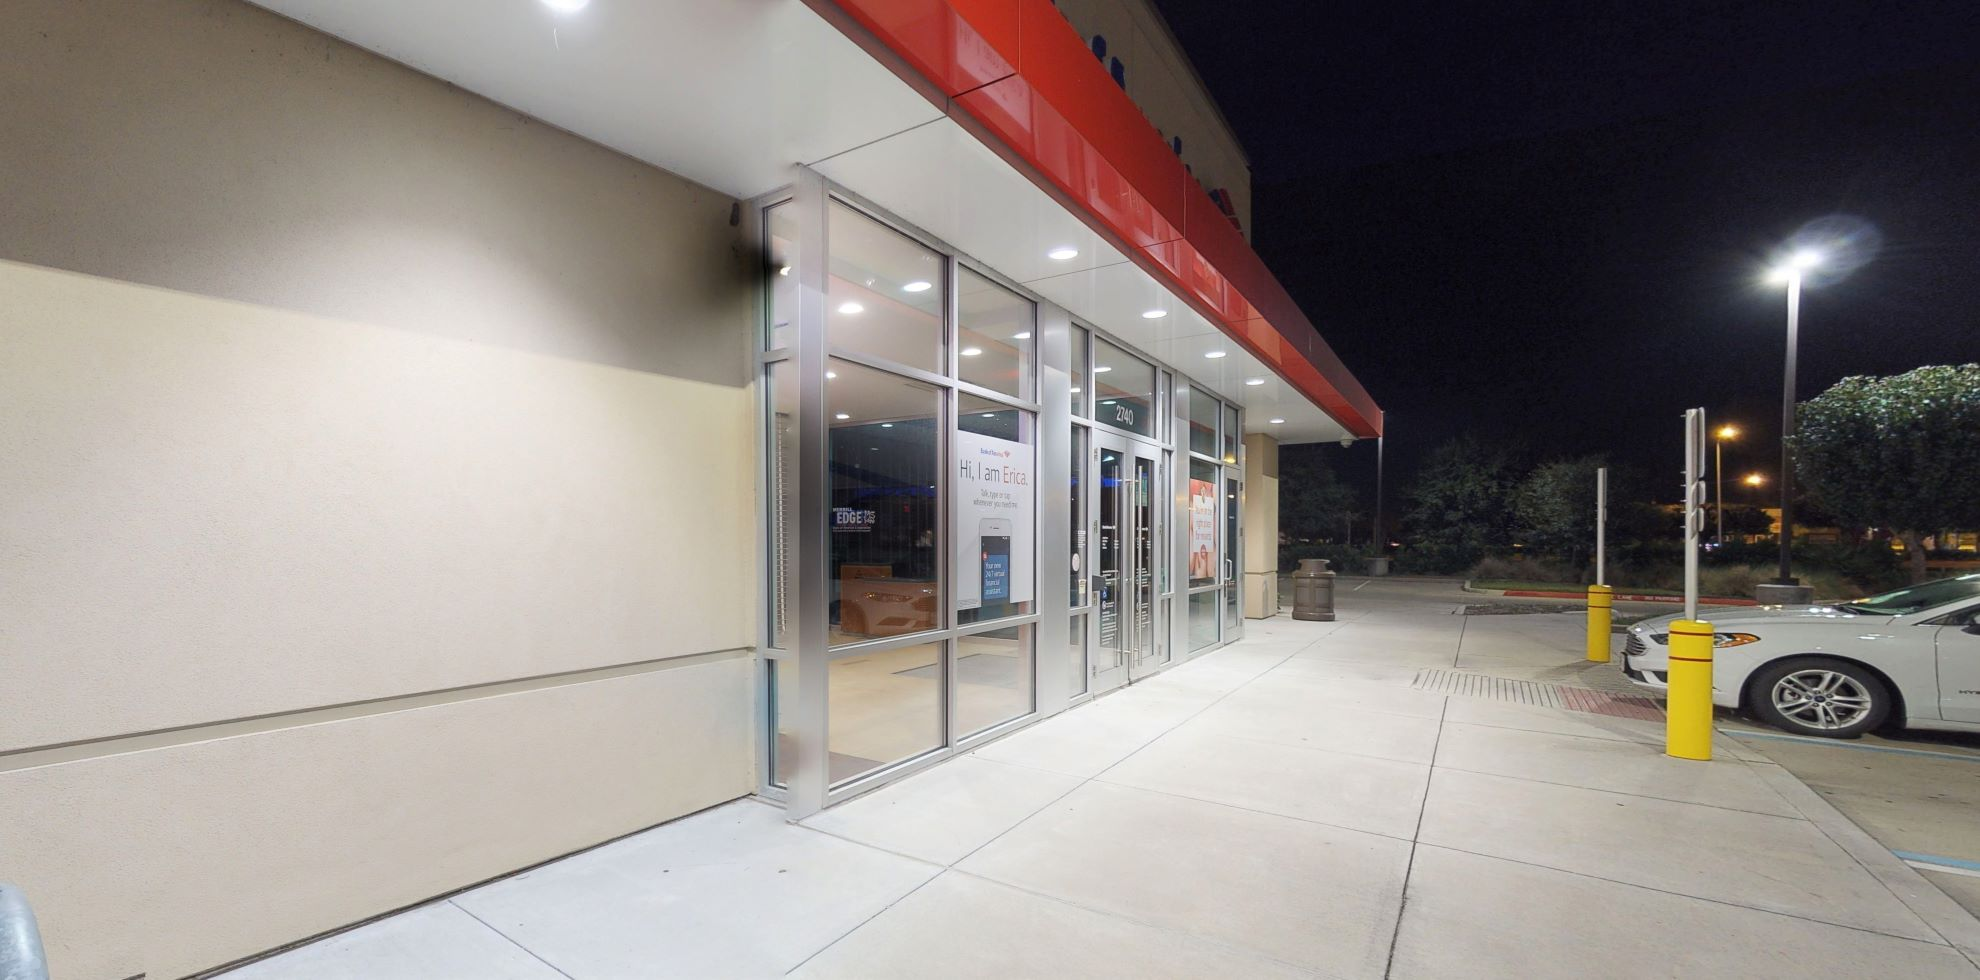 Bank of America financial center with drive-thru ATM   2740 Pearland Pkwy, Pearland, TX 77581